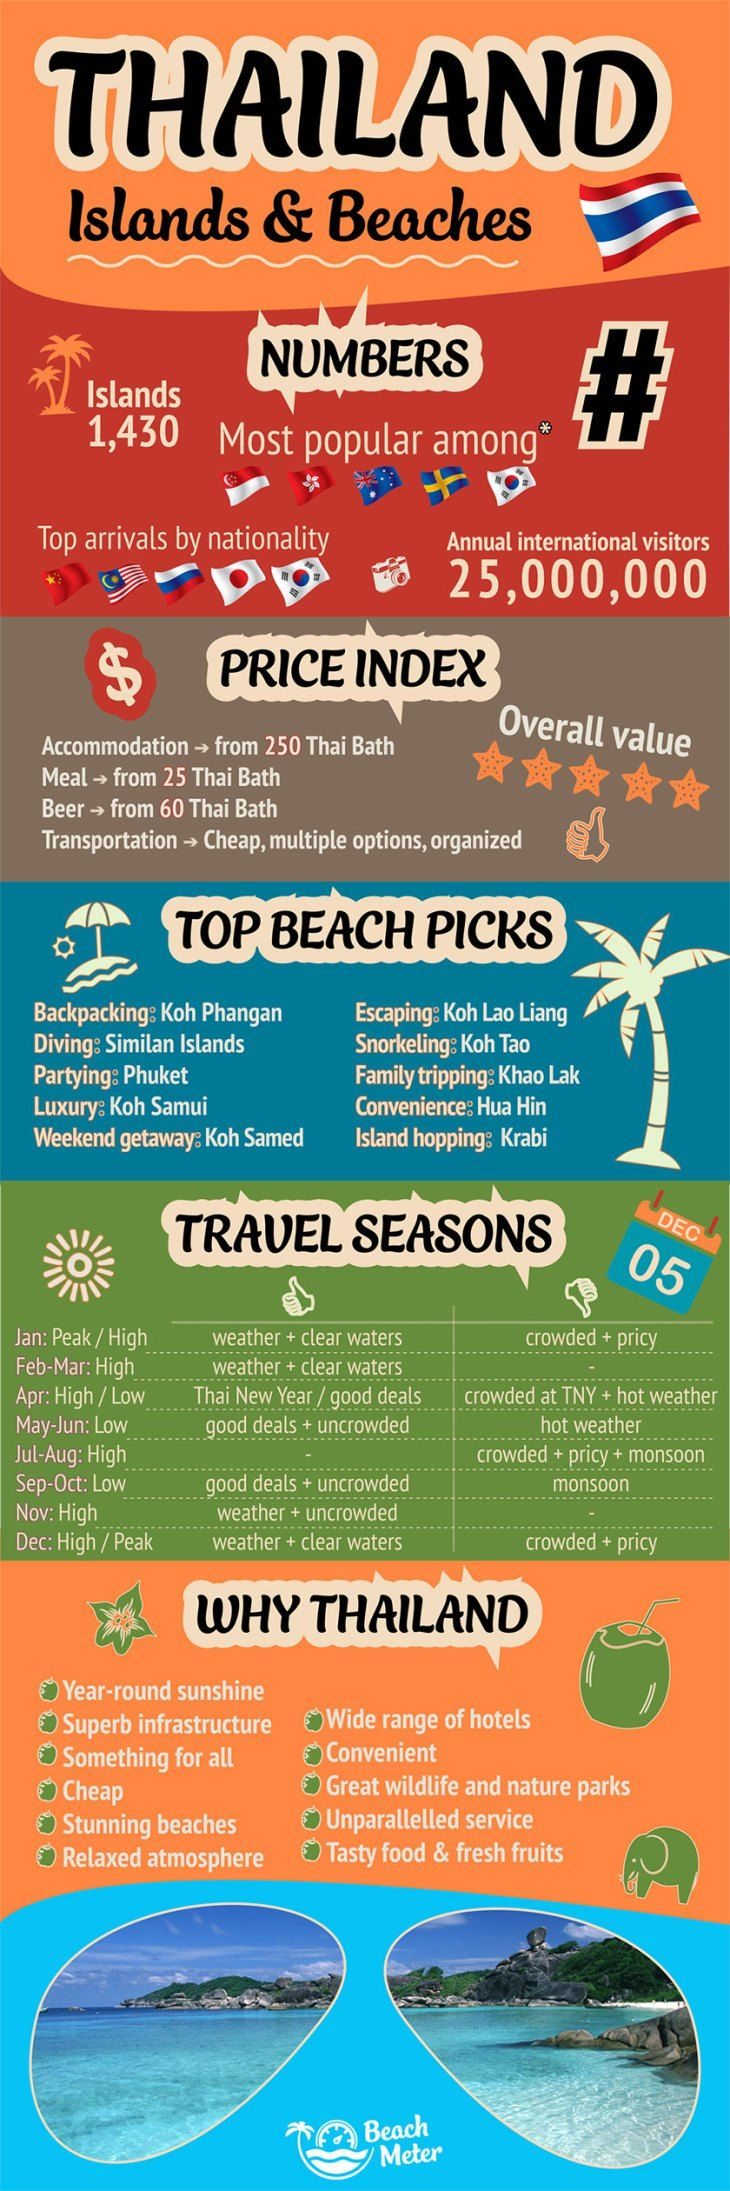 infographic on thailand u0026 39 s islands and beaches including tourism information  price index  top